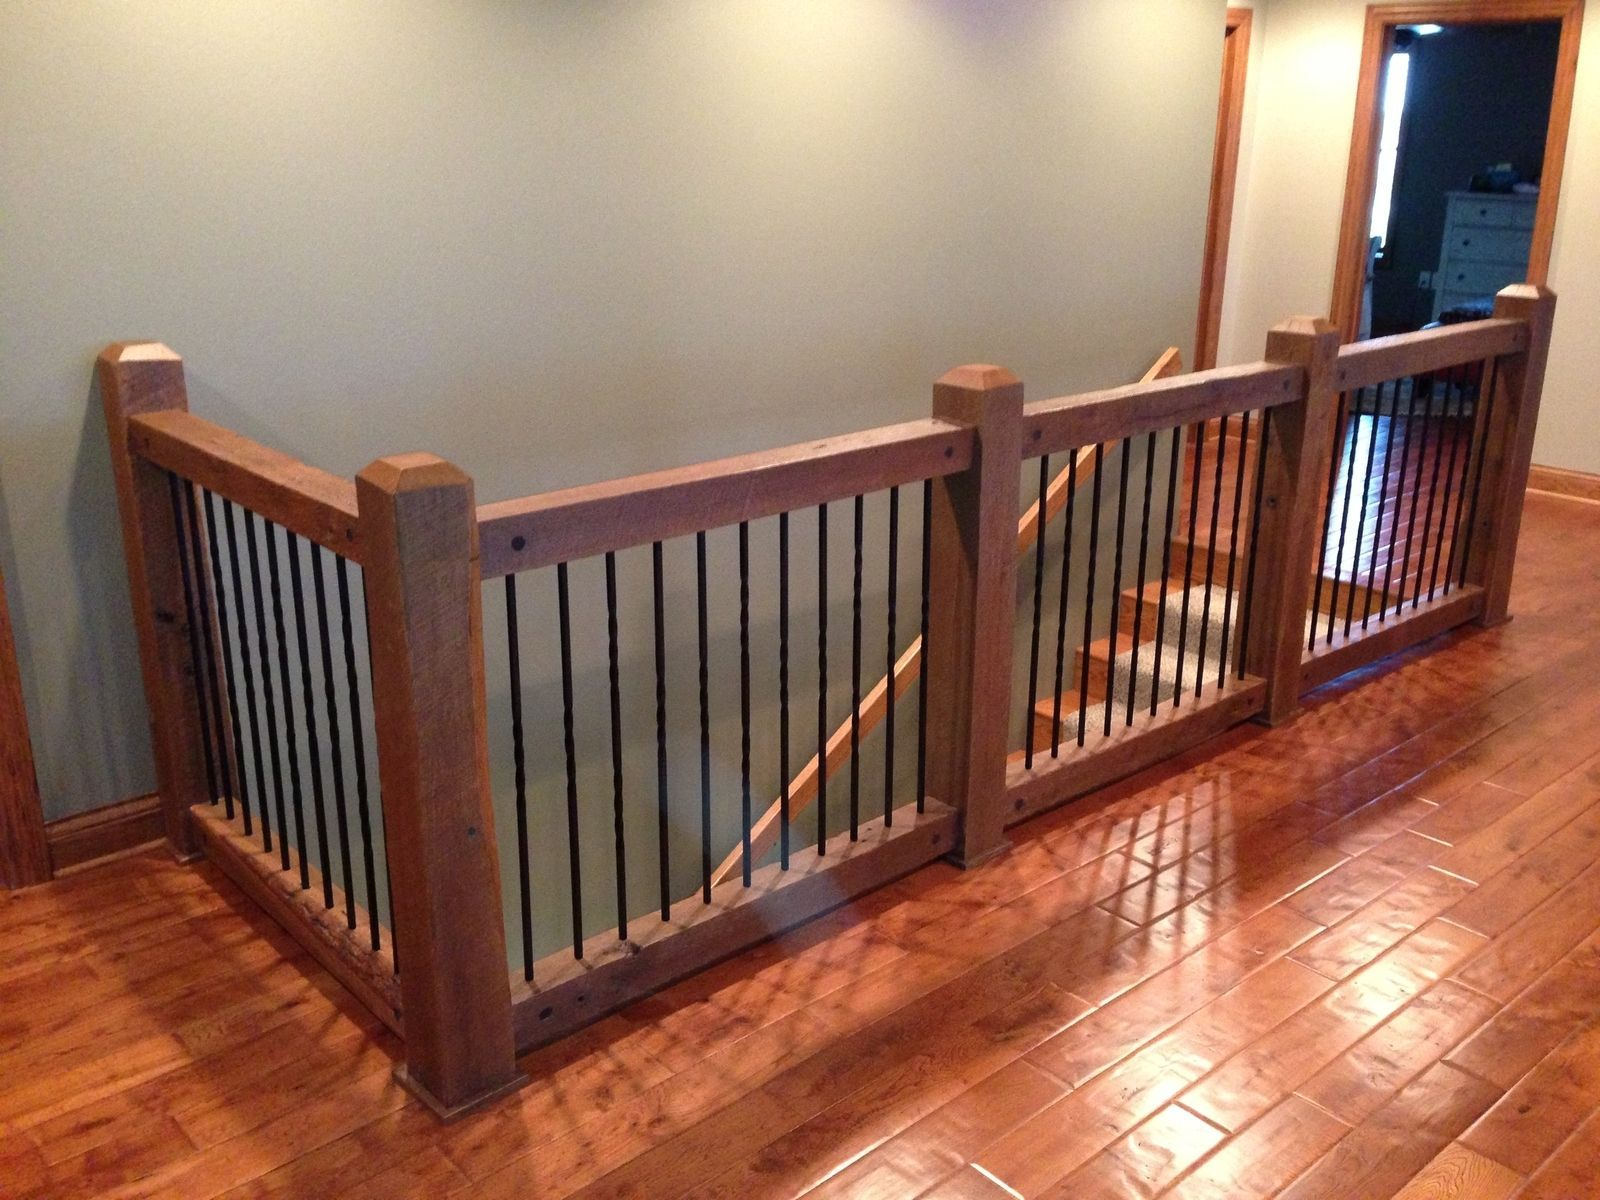 Best Custom Made Reclaimed Stair Railings Interior Stair Railing Indoor Stair Railing Interior Stairs 400 x 300